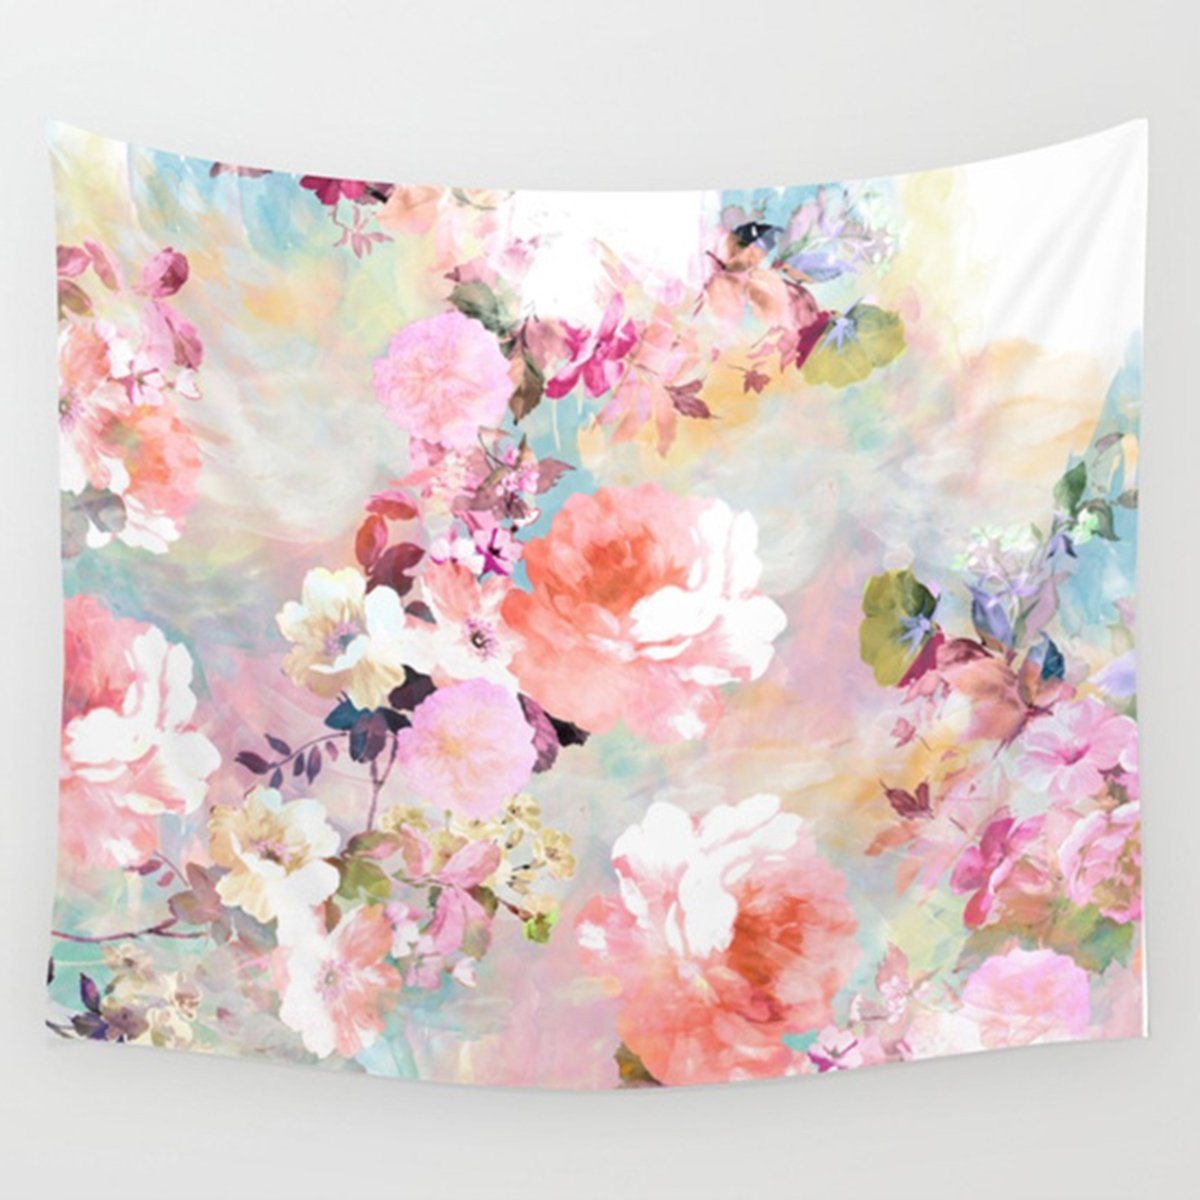 Watercolor Flower Print Wall Hanging Tapestry Dorm Decor (51H x 60W, Flower) Shukqueen